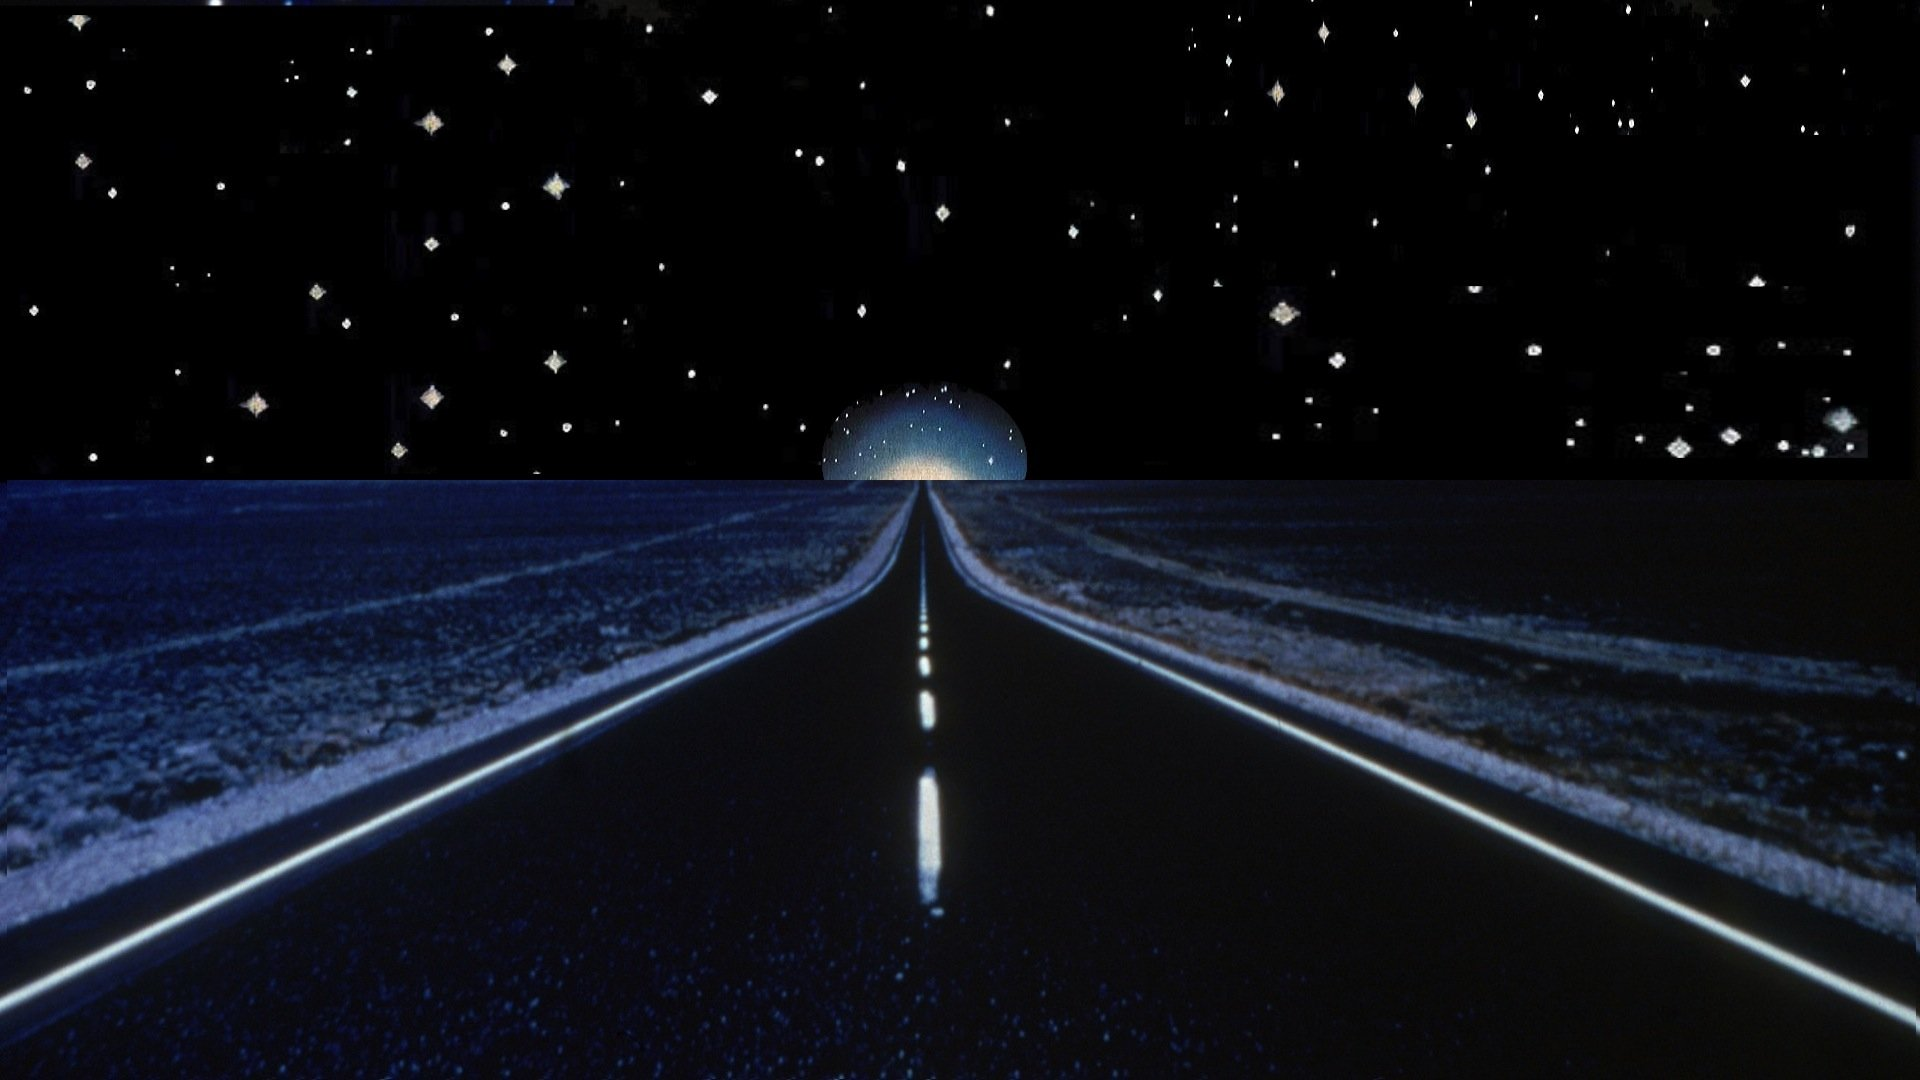 Night Road With Moon And Stars Papel De Parede Hd Plano De Fundo 1920x1080 Id 704881 Wallpaper Abyss